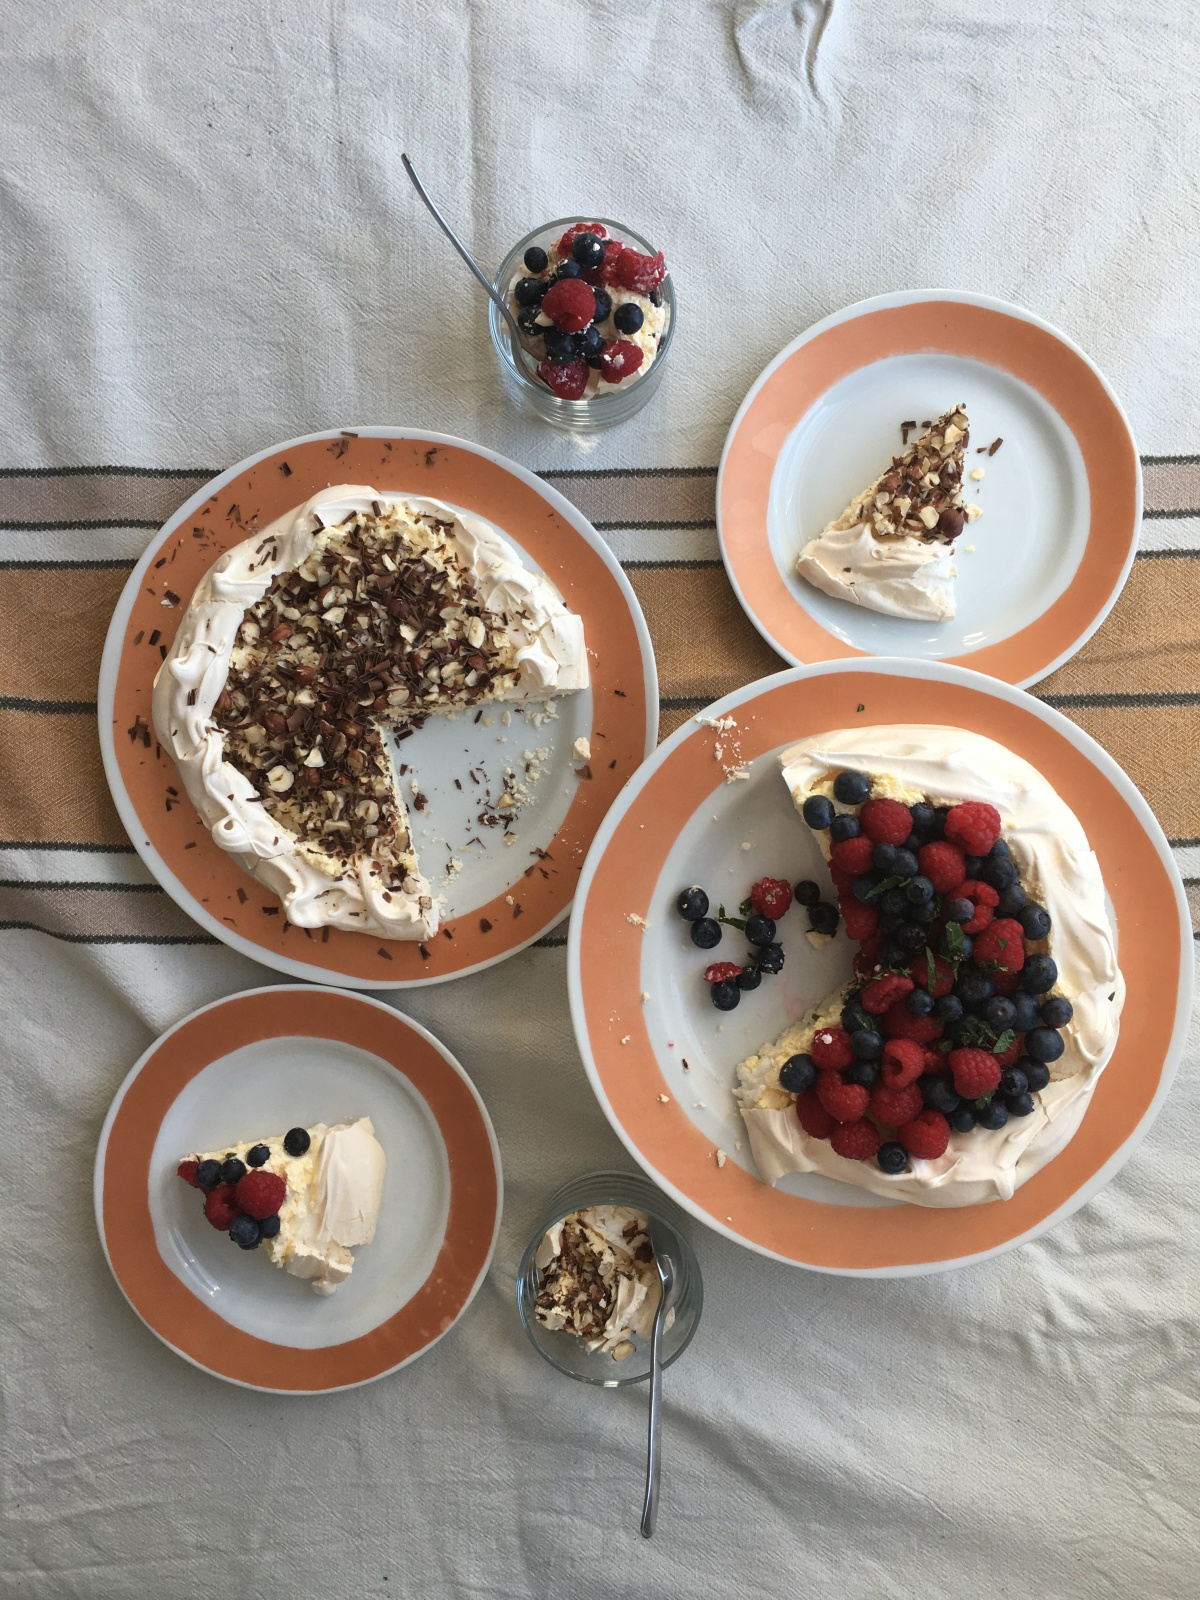 Easy Mother's Day Desserts You Can Make on theFly